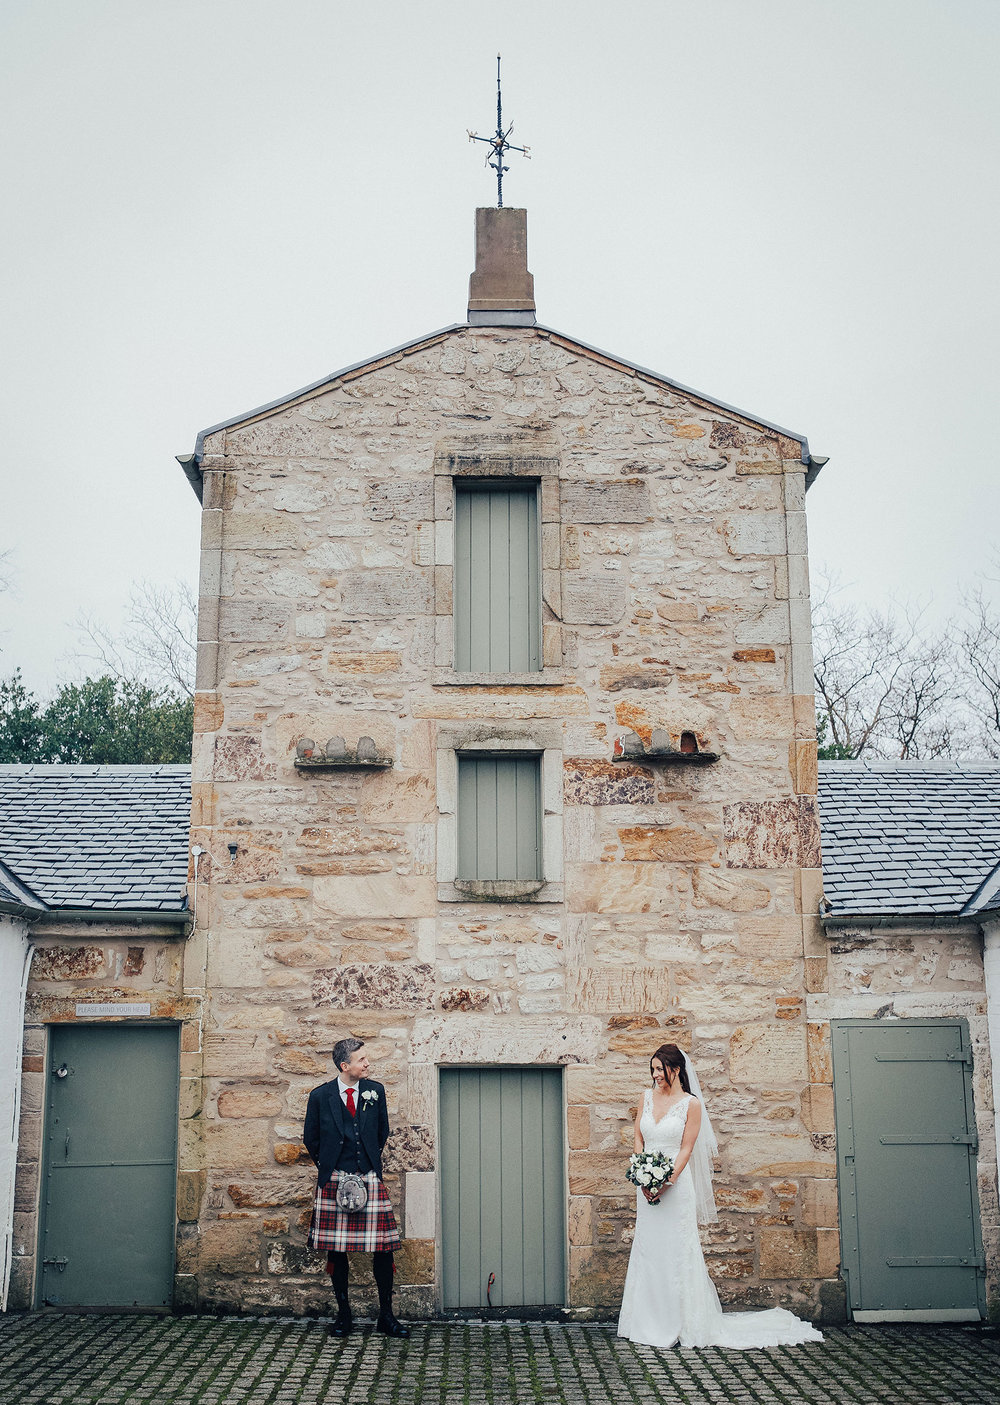 PJ_PHILLIPS_PHOTOGRAPHY_ALTERNATIVE_WEDDING_PHOTOGRAPHY_GLASGOW_YORKSHIRE_109.jpg